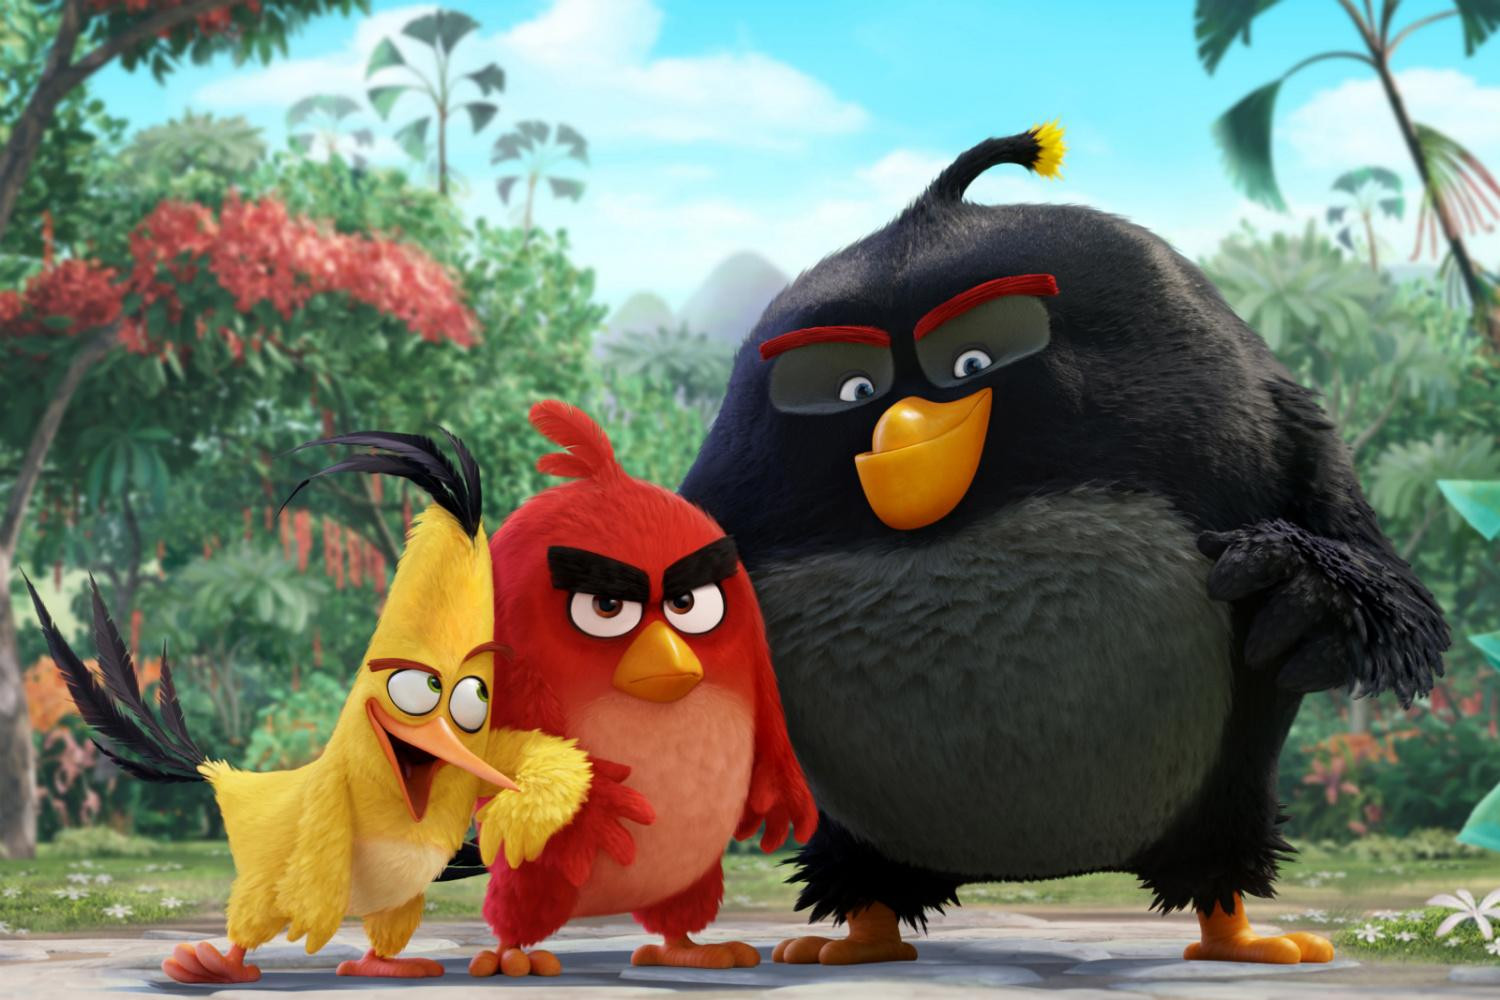 Angry Birds creators have sequel feature film in the works